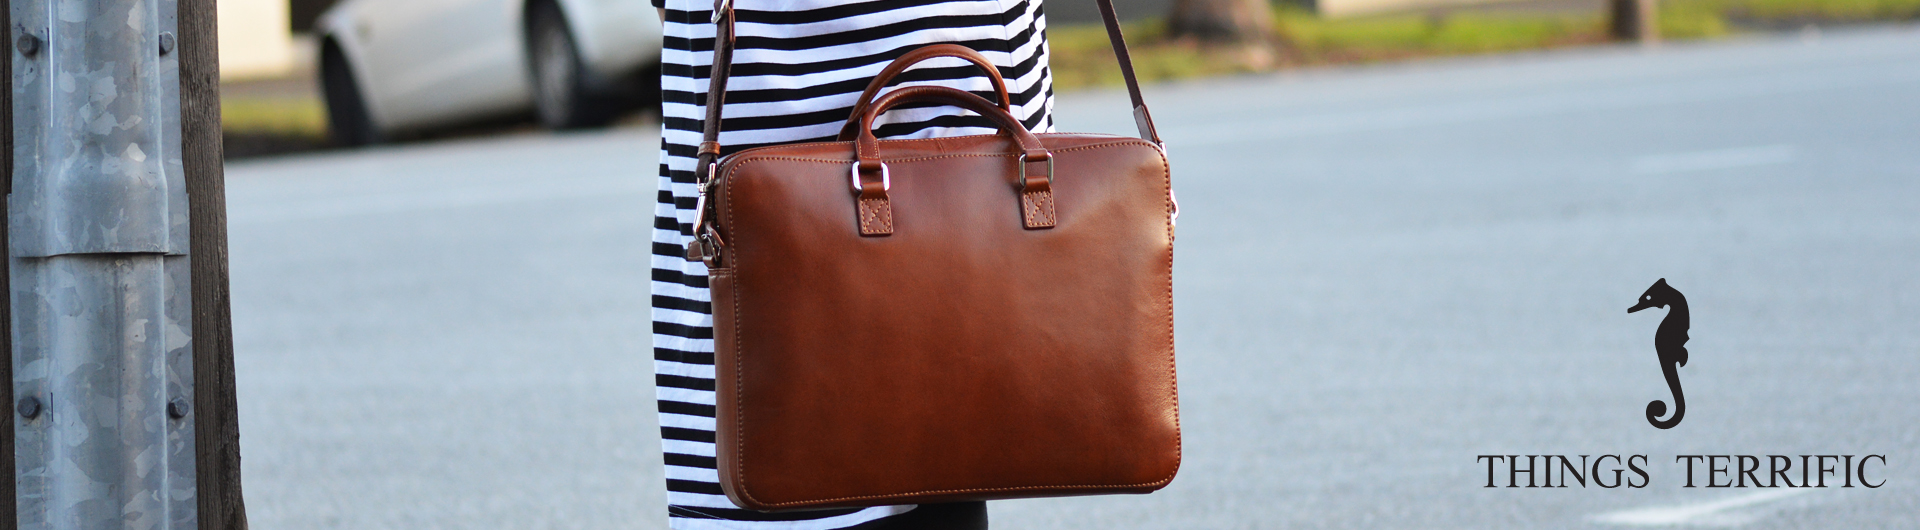 Things Terrific Leather Work Bag